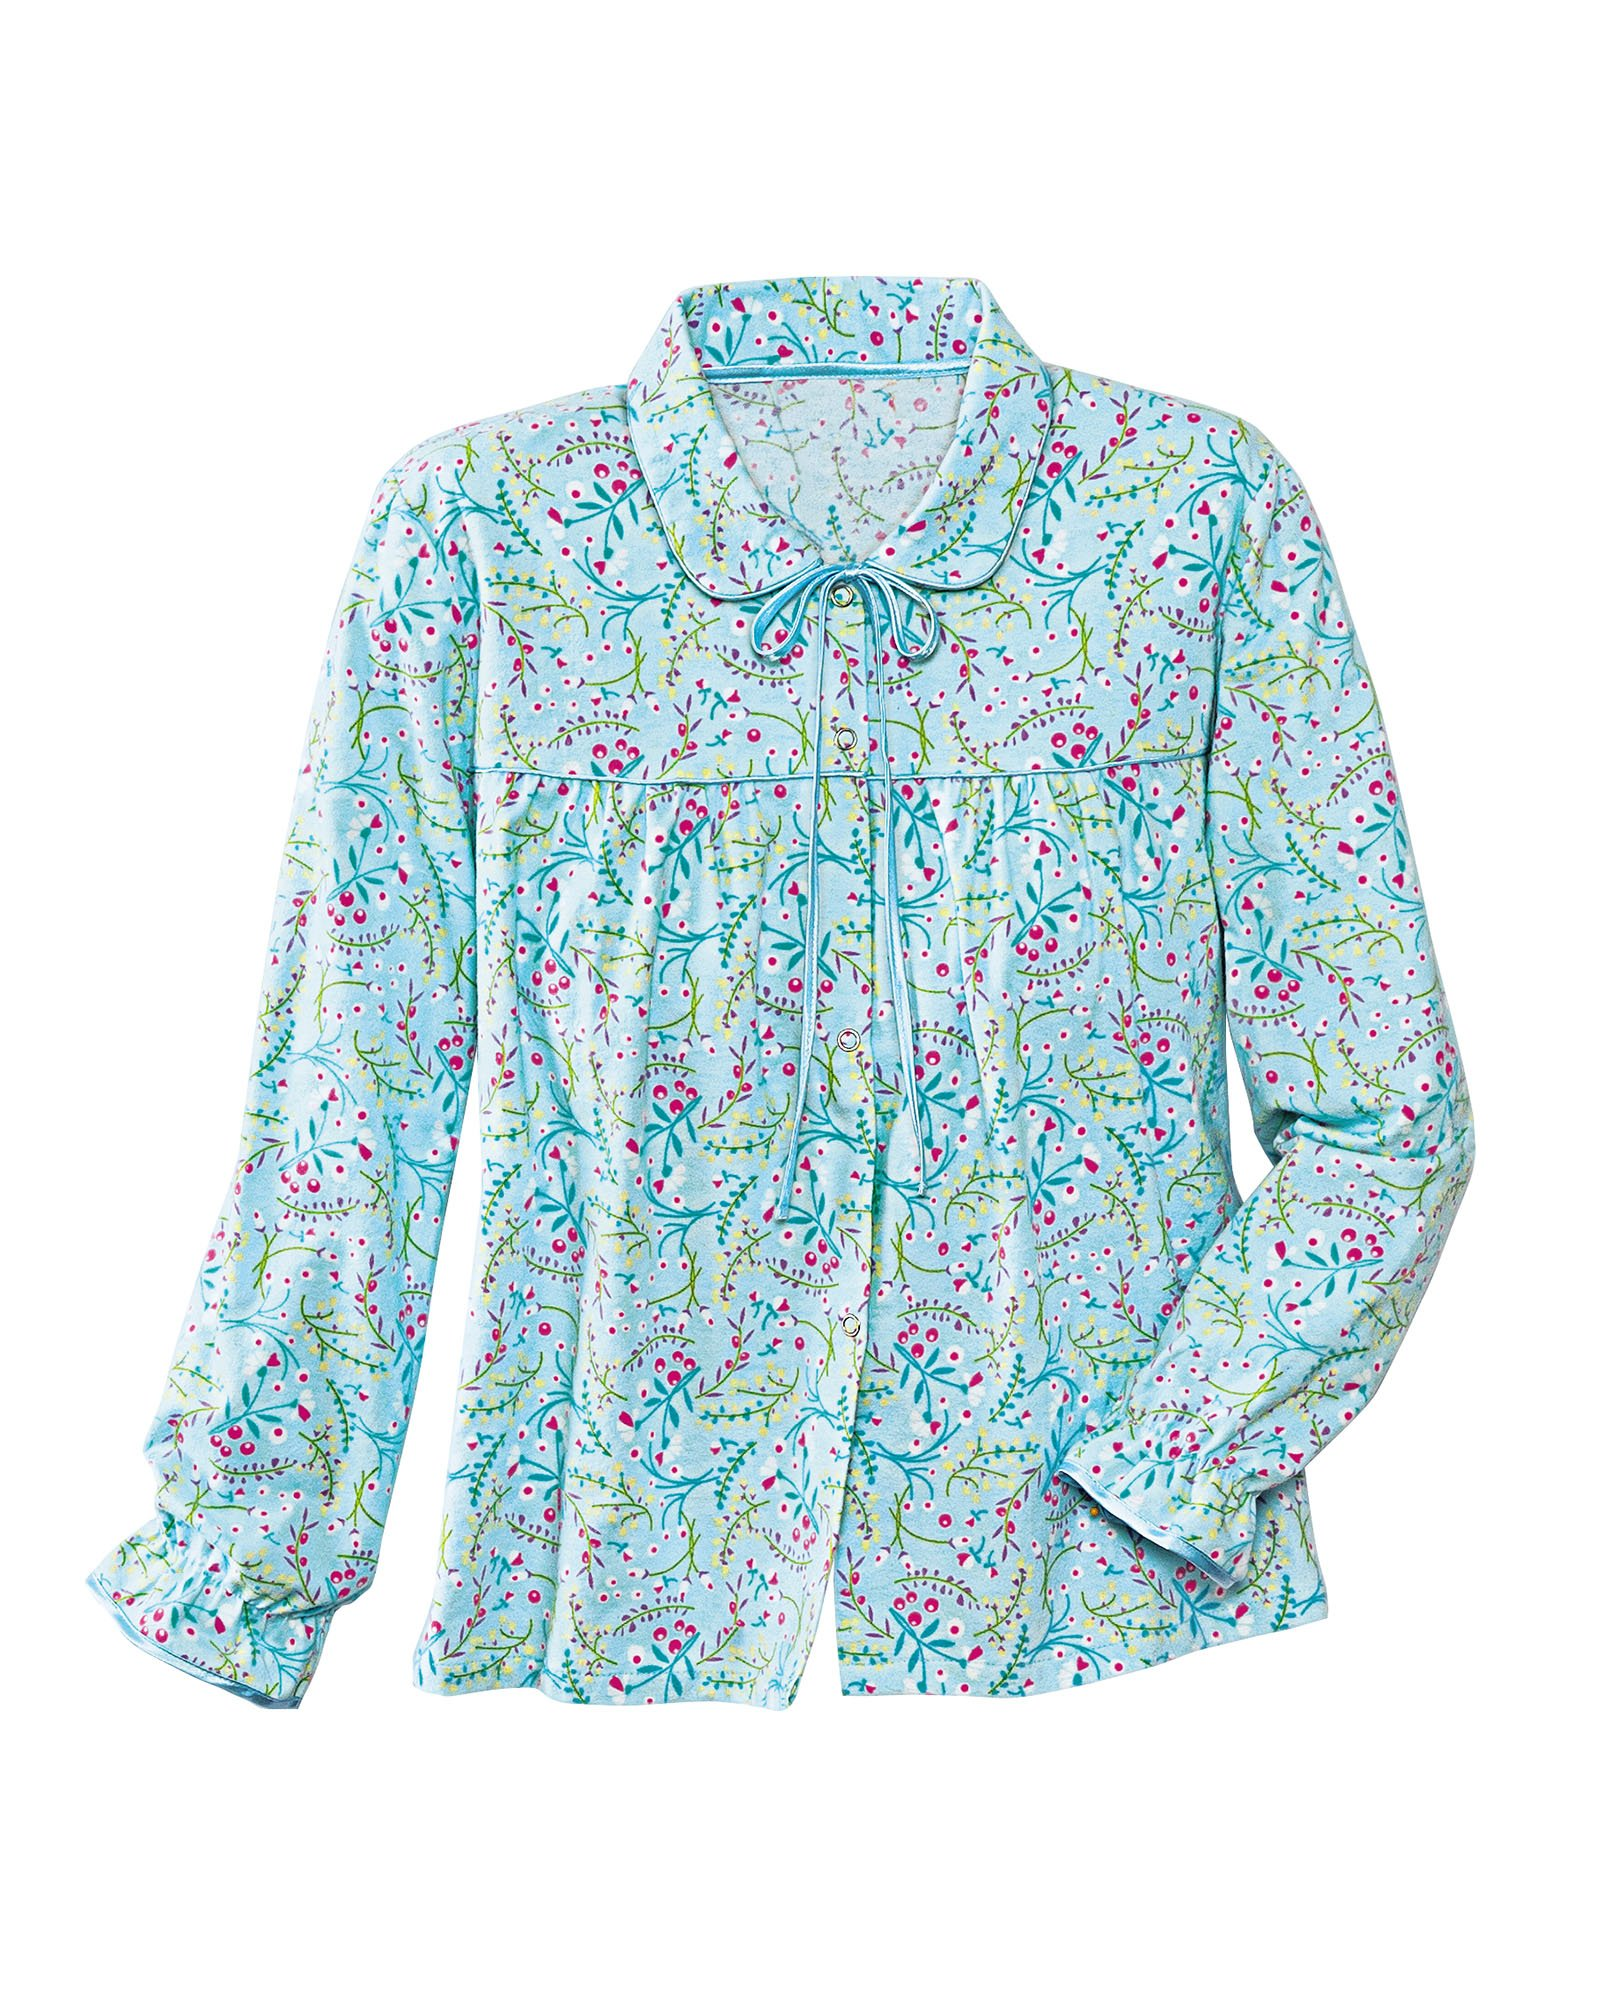 La Cera Flannel Bed Jacket, Aqua Floral, Large by La Cera